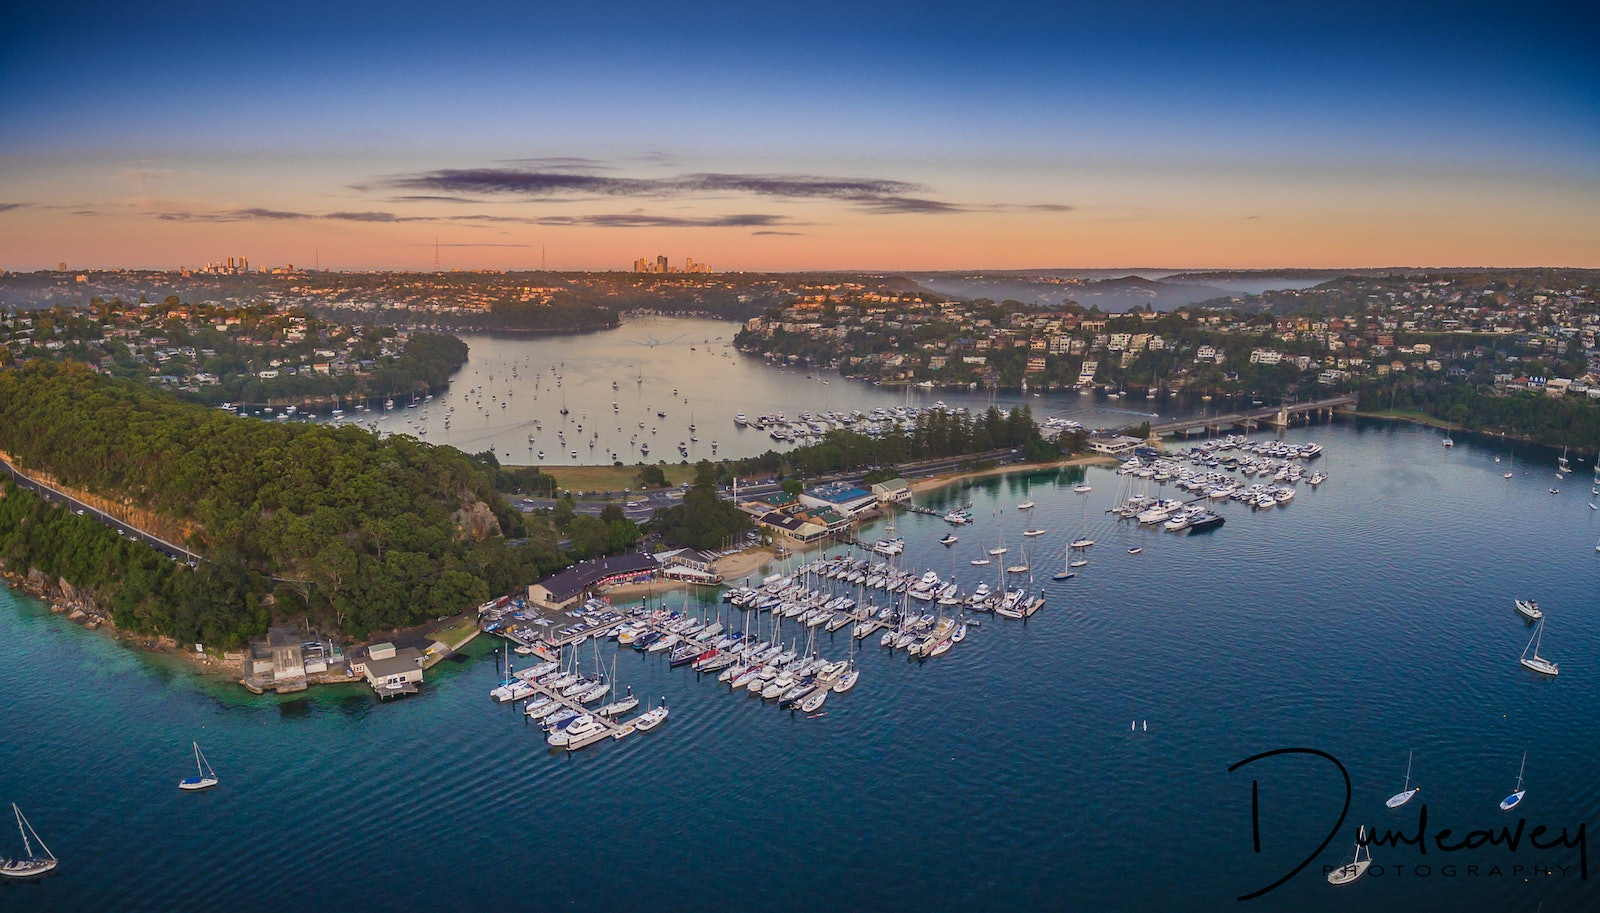 Sydney's Middle Harbour - This panoramic shot was taken at dawn, looking across Sydney's Middle Harbour towards Spit Bridge and the marina